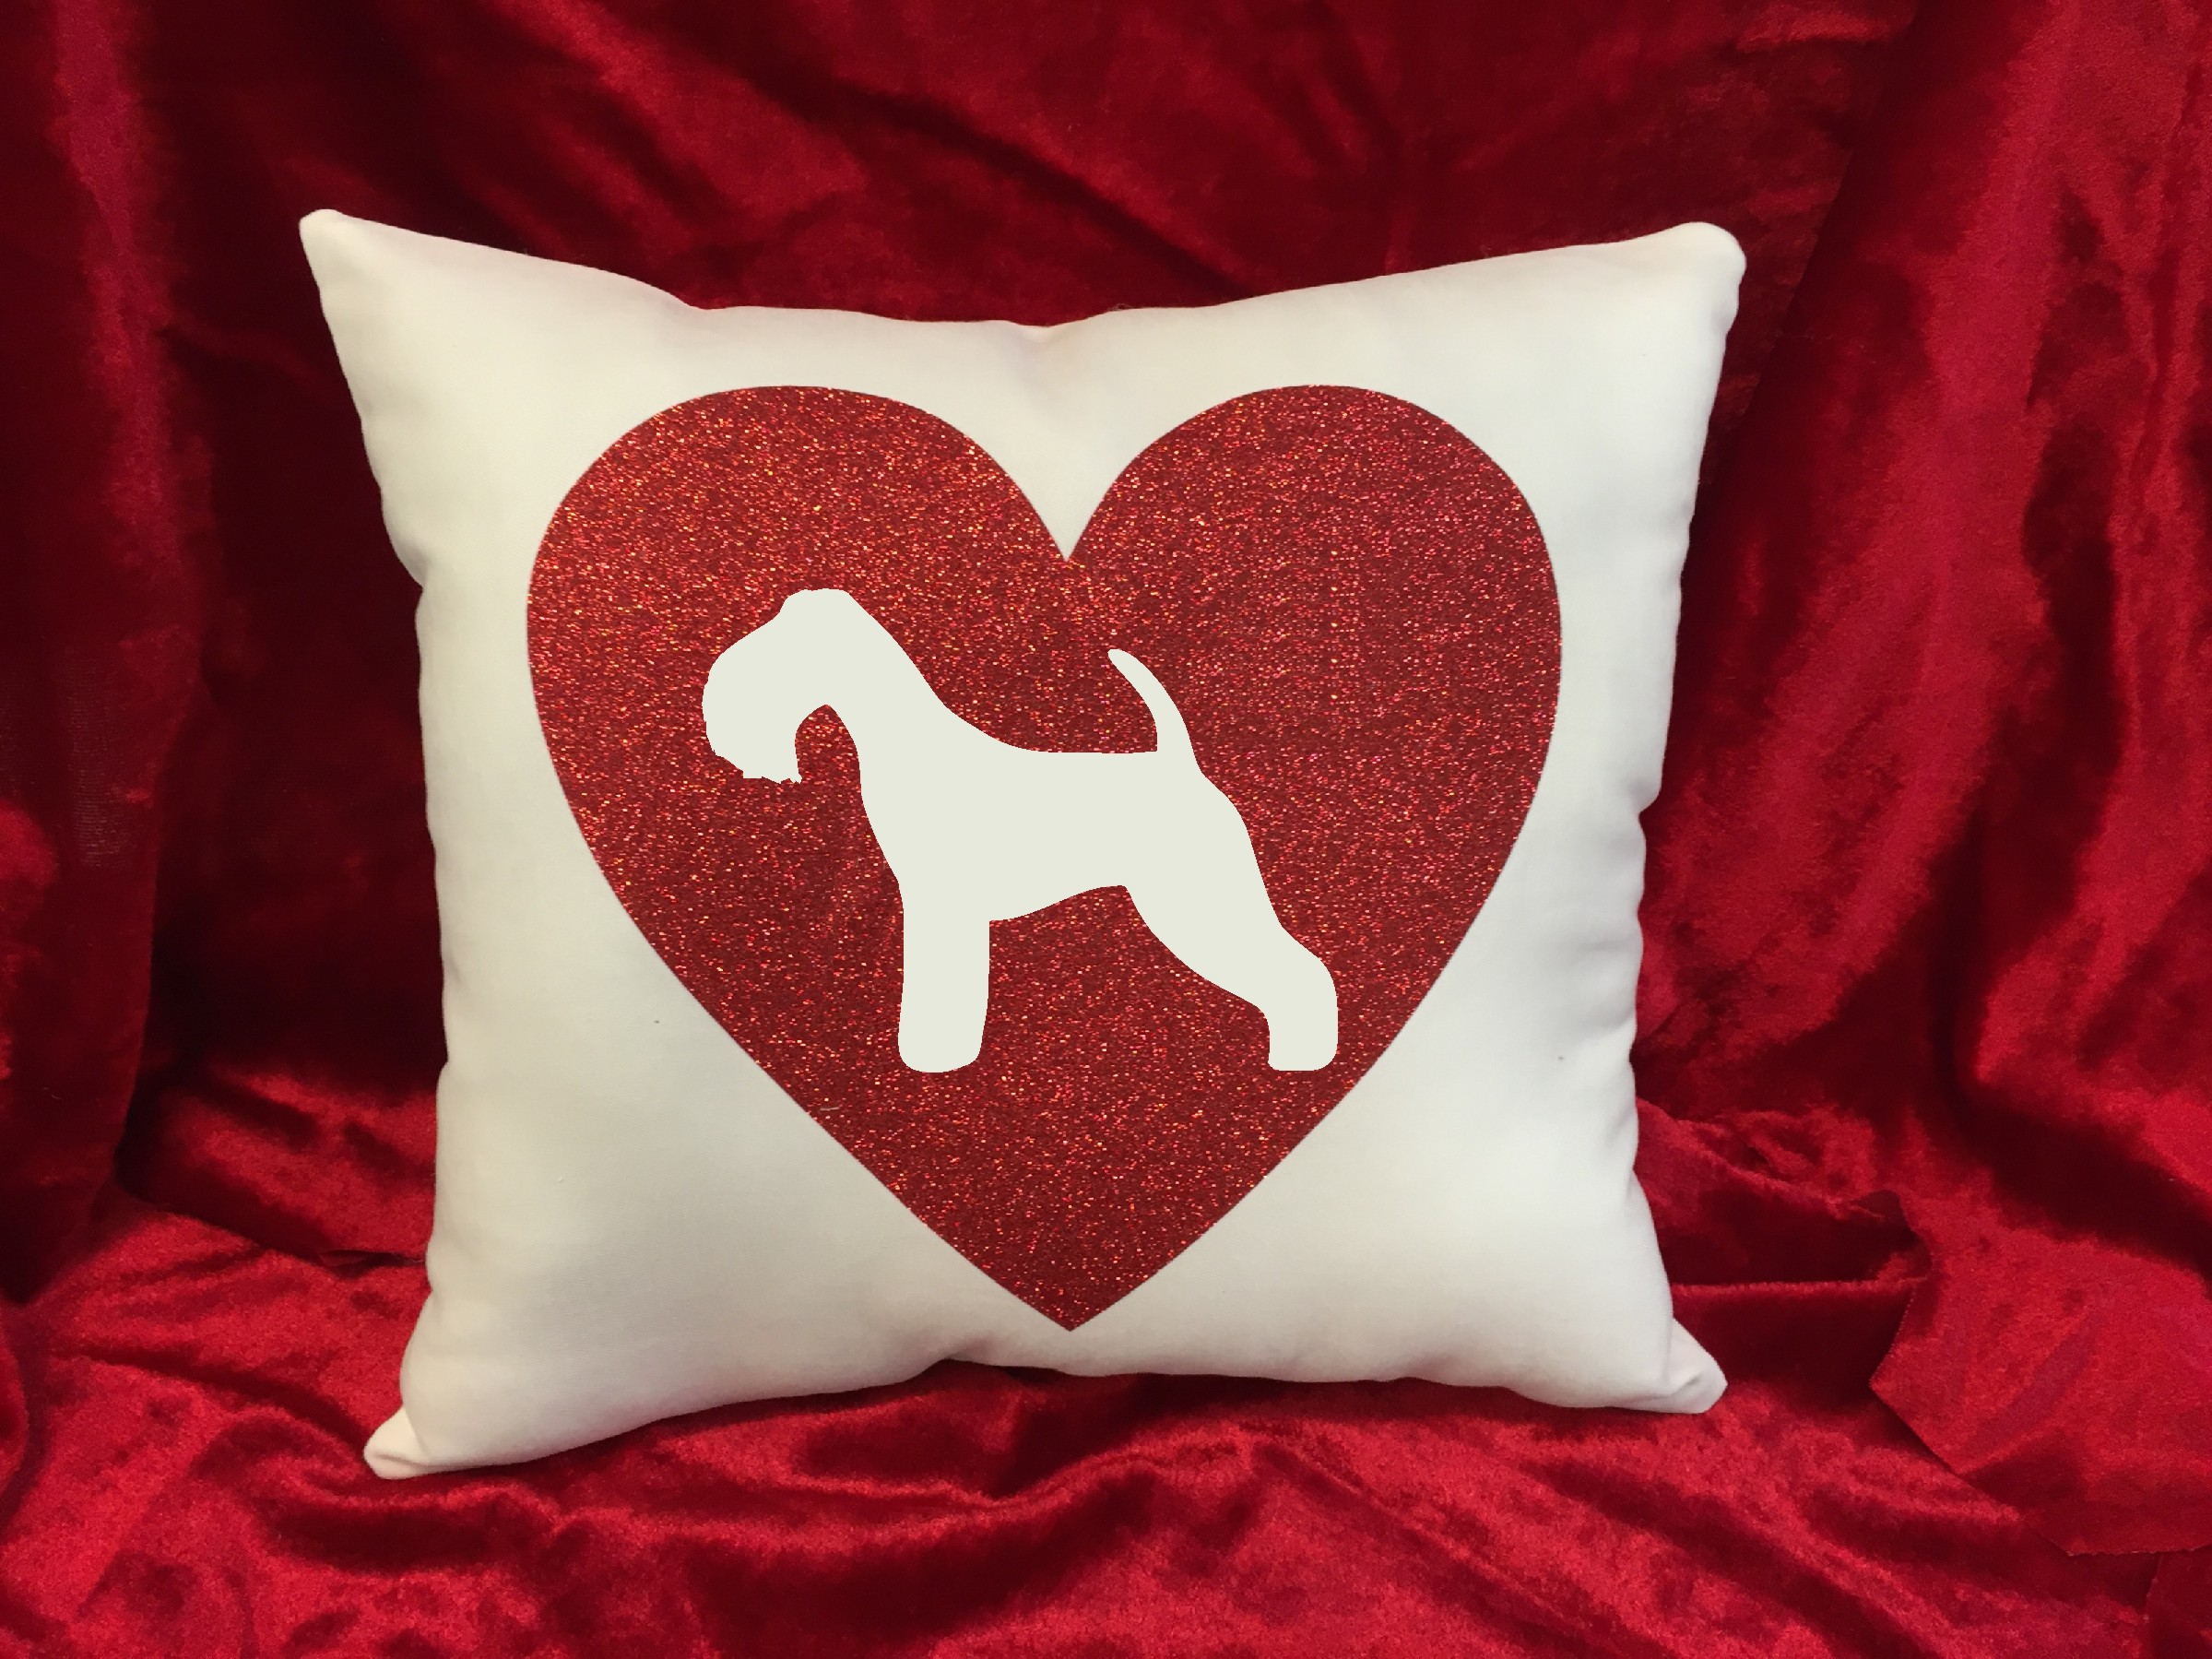 Dogs - Throw Pillow - Lakeland Terrier